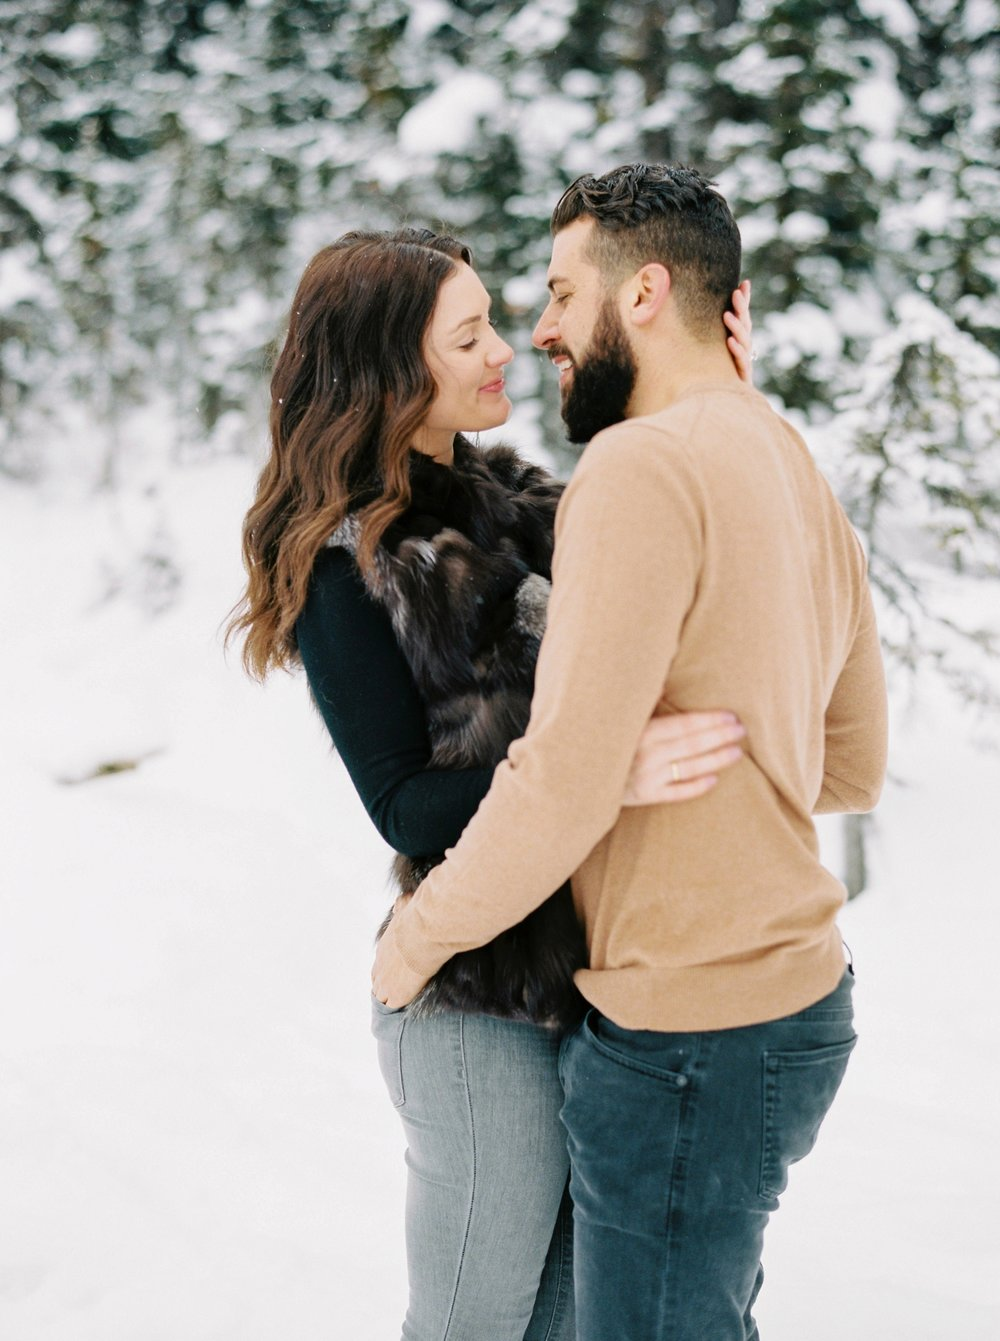 Lake Louise Banff Engagement Session | Winter Snowy Couples Photos | Banff photographers | Jusitne Milton Photography